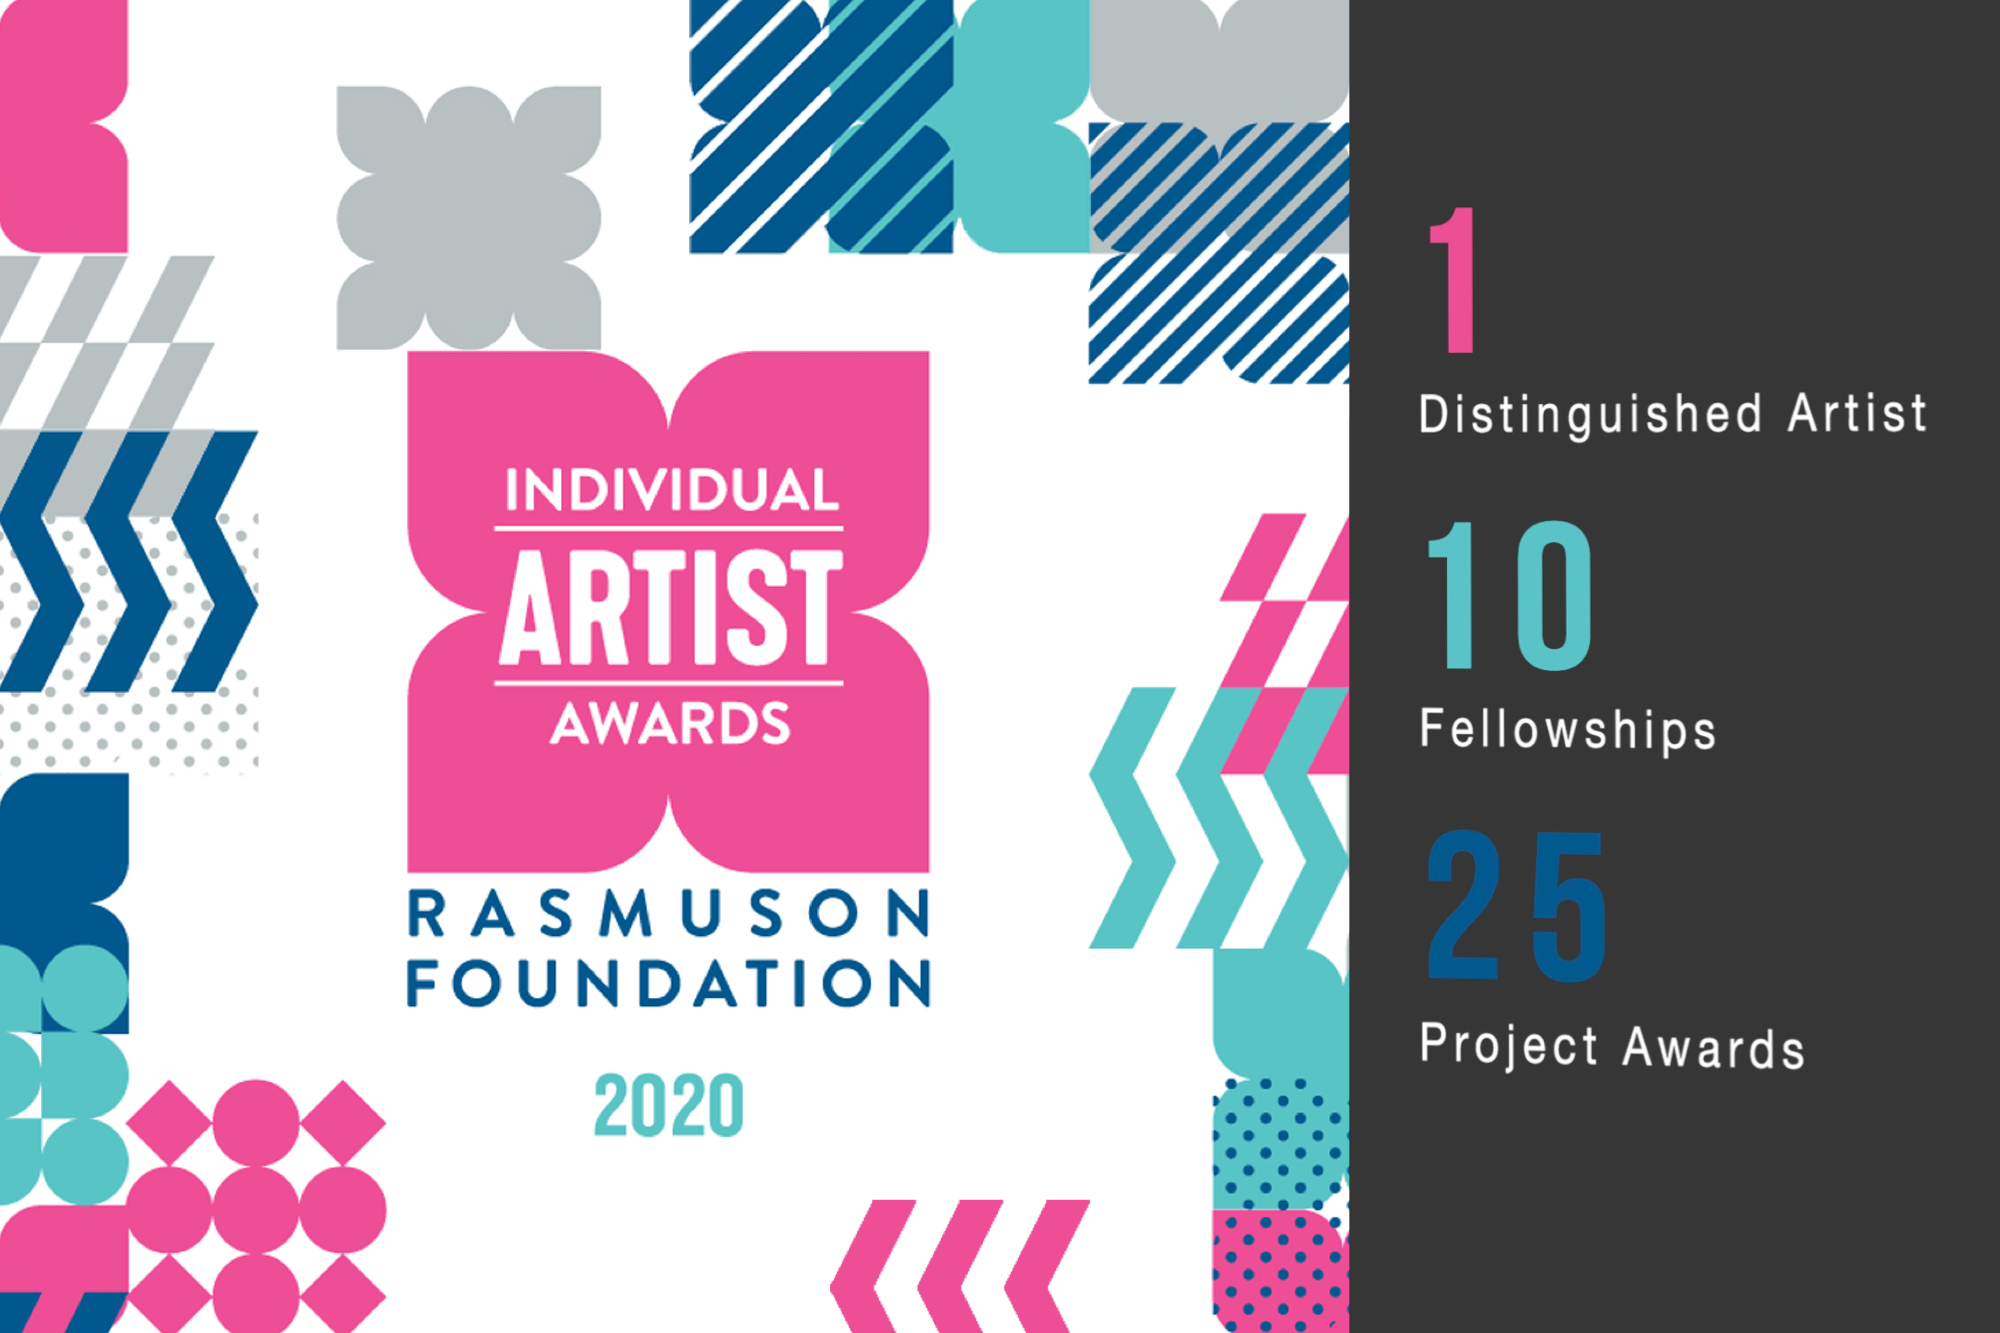 Rasmuson Foundation 2020 Individual Artist Awards